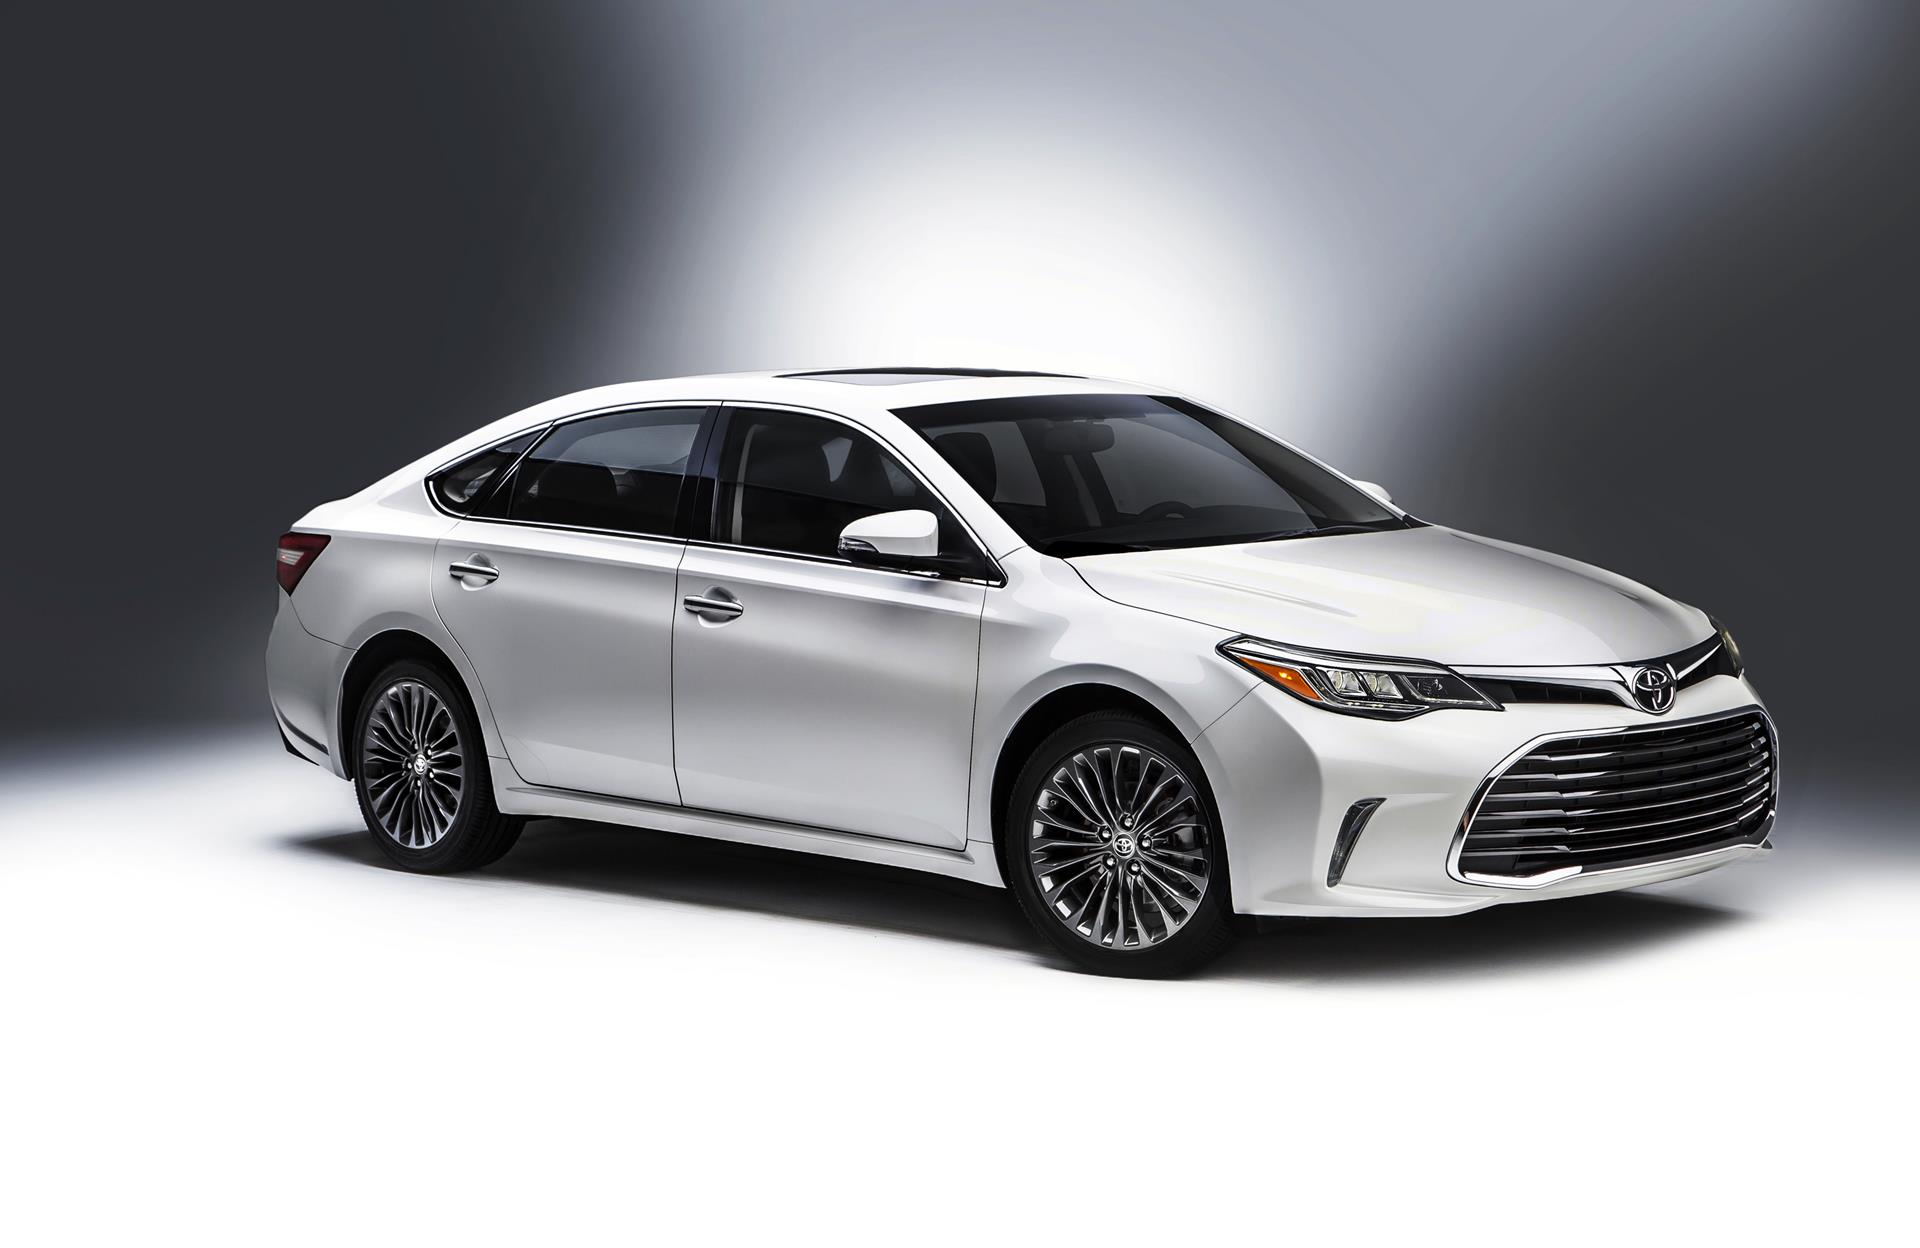 2016 Toyota Avalon Technical And Mechanical Specifications 1973 Land Cruiser Wheelbase Width